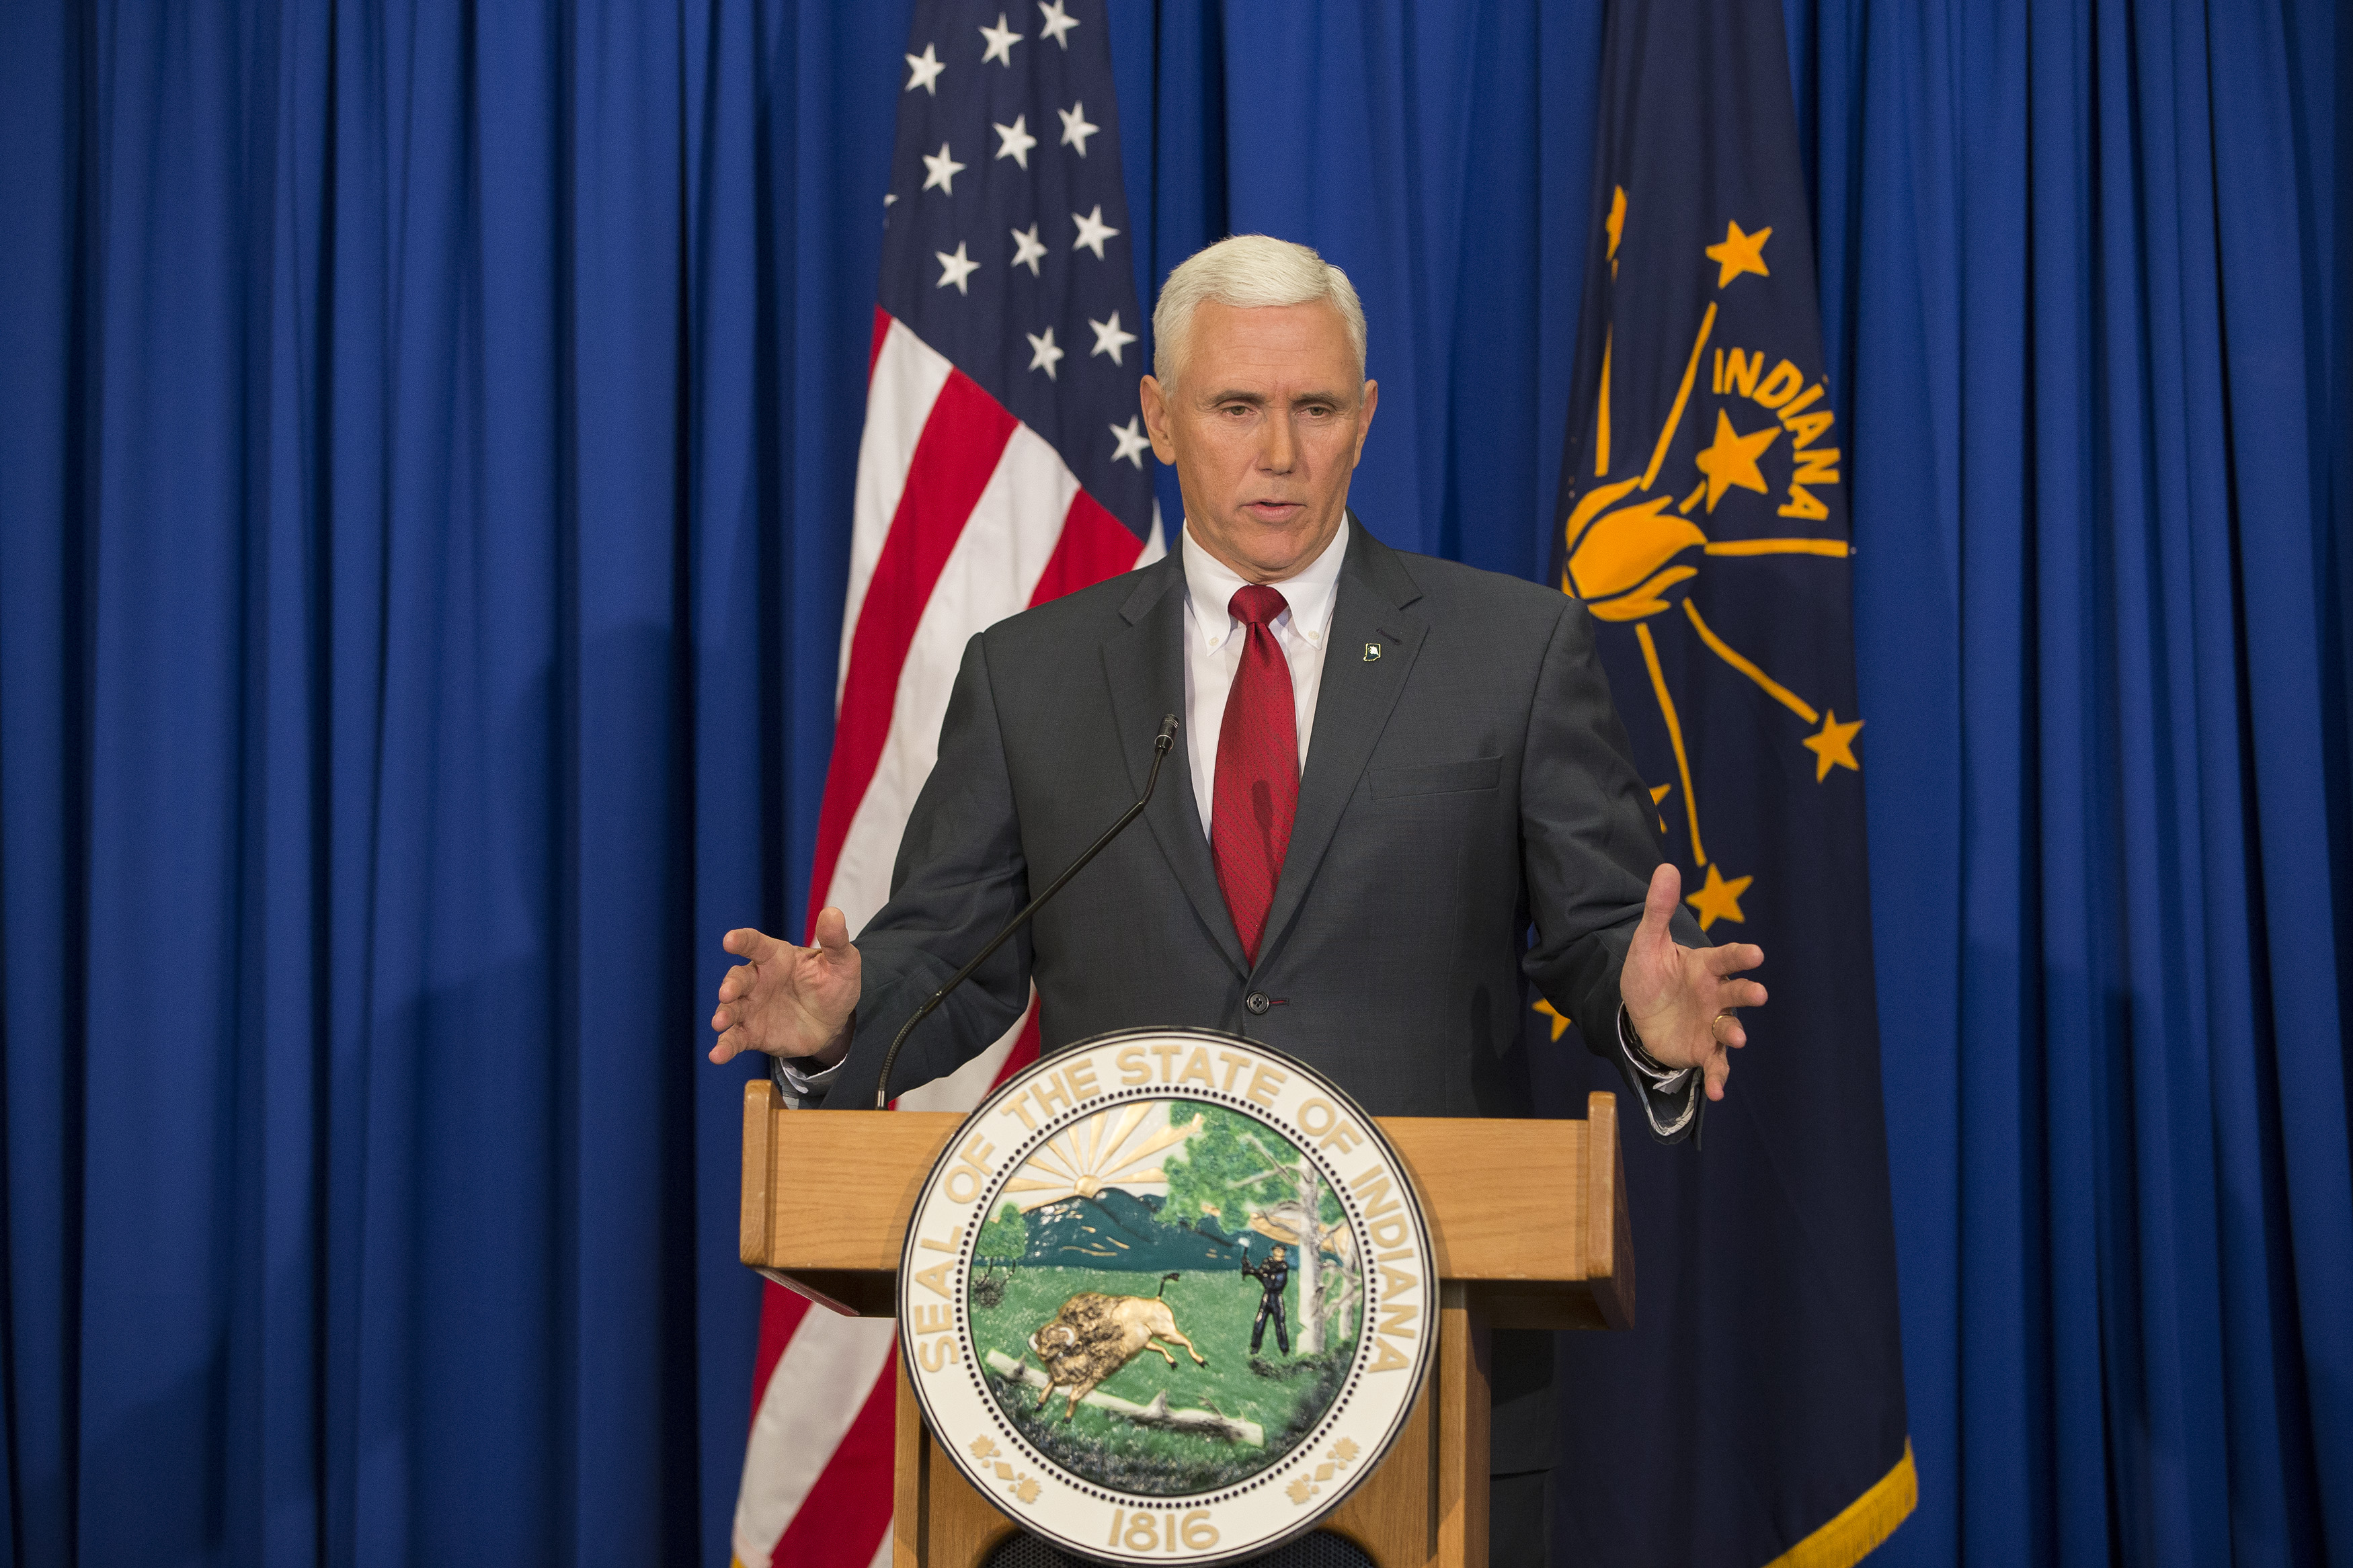 Governor Mike Pence of Indiana faced national scrutiny for his anti-LGBT stances